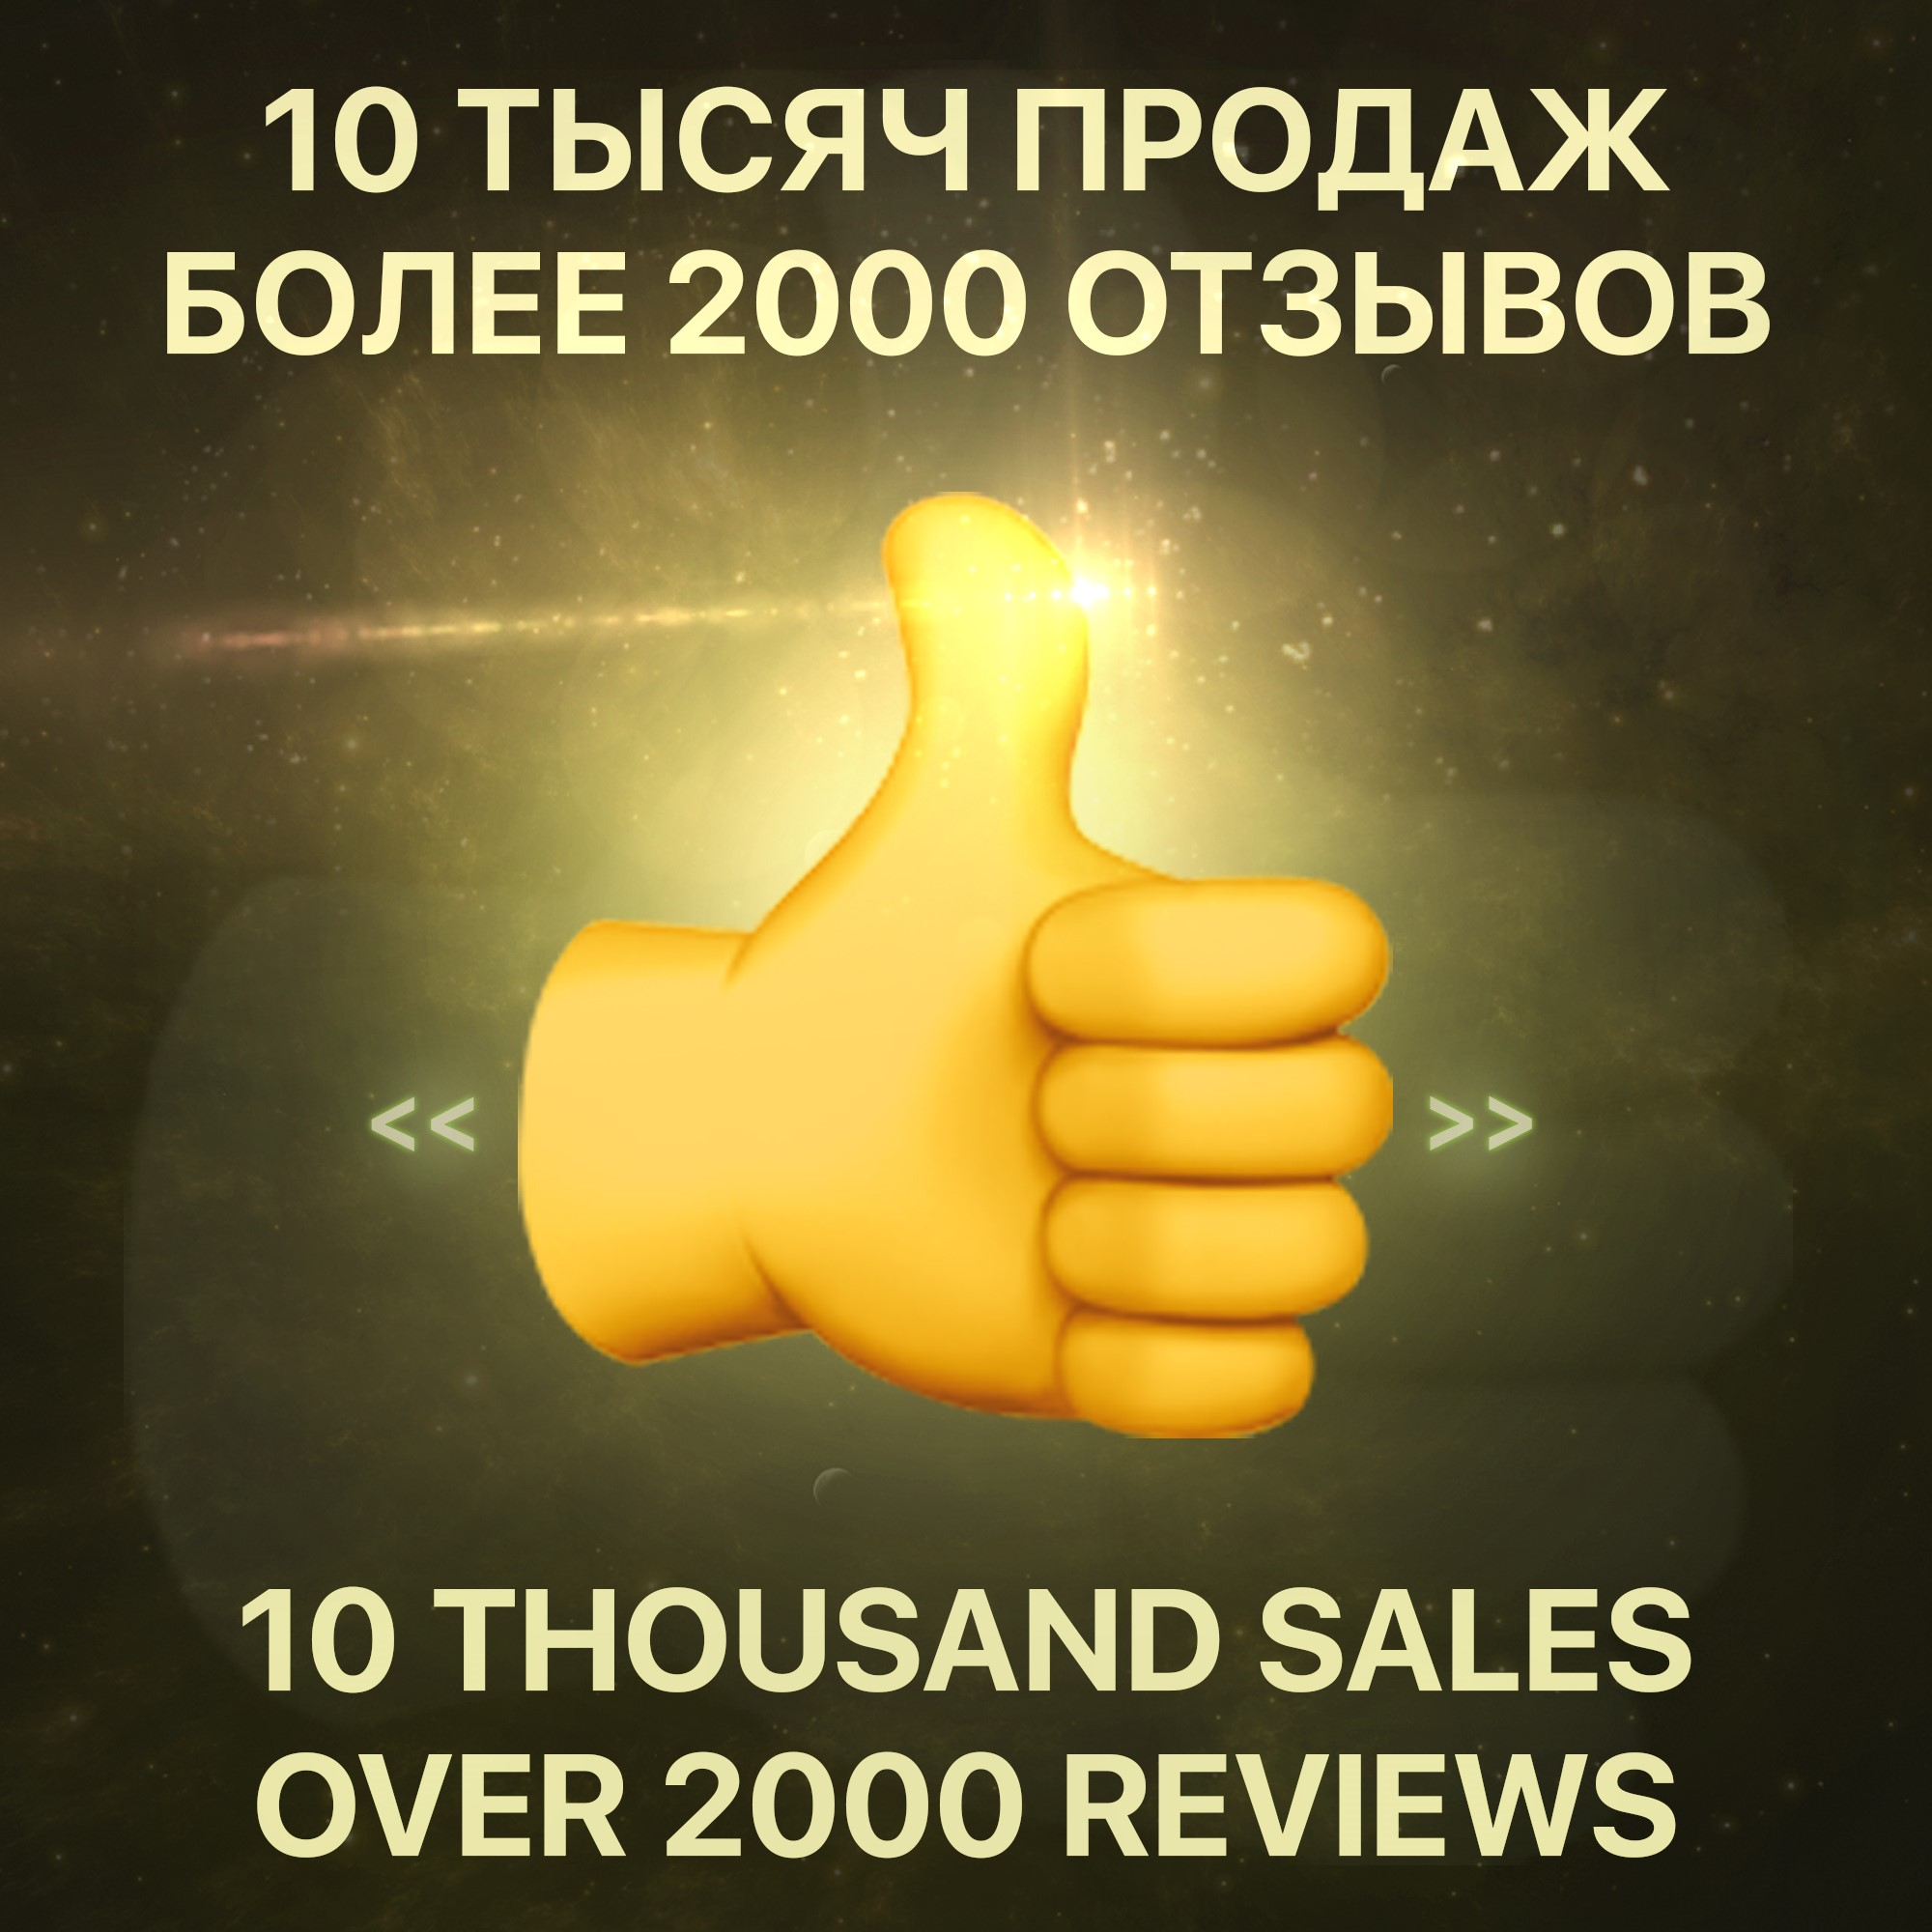 iTunes Gift Card - 800 Rubles (RU) + GIFT